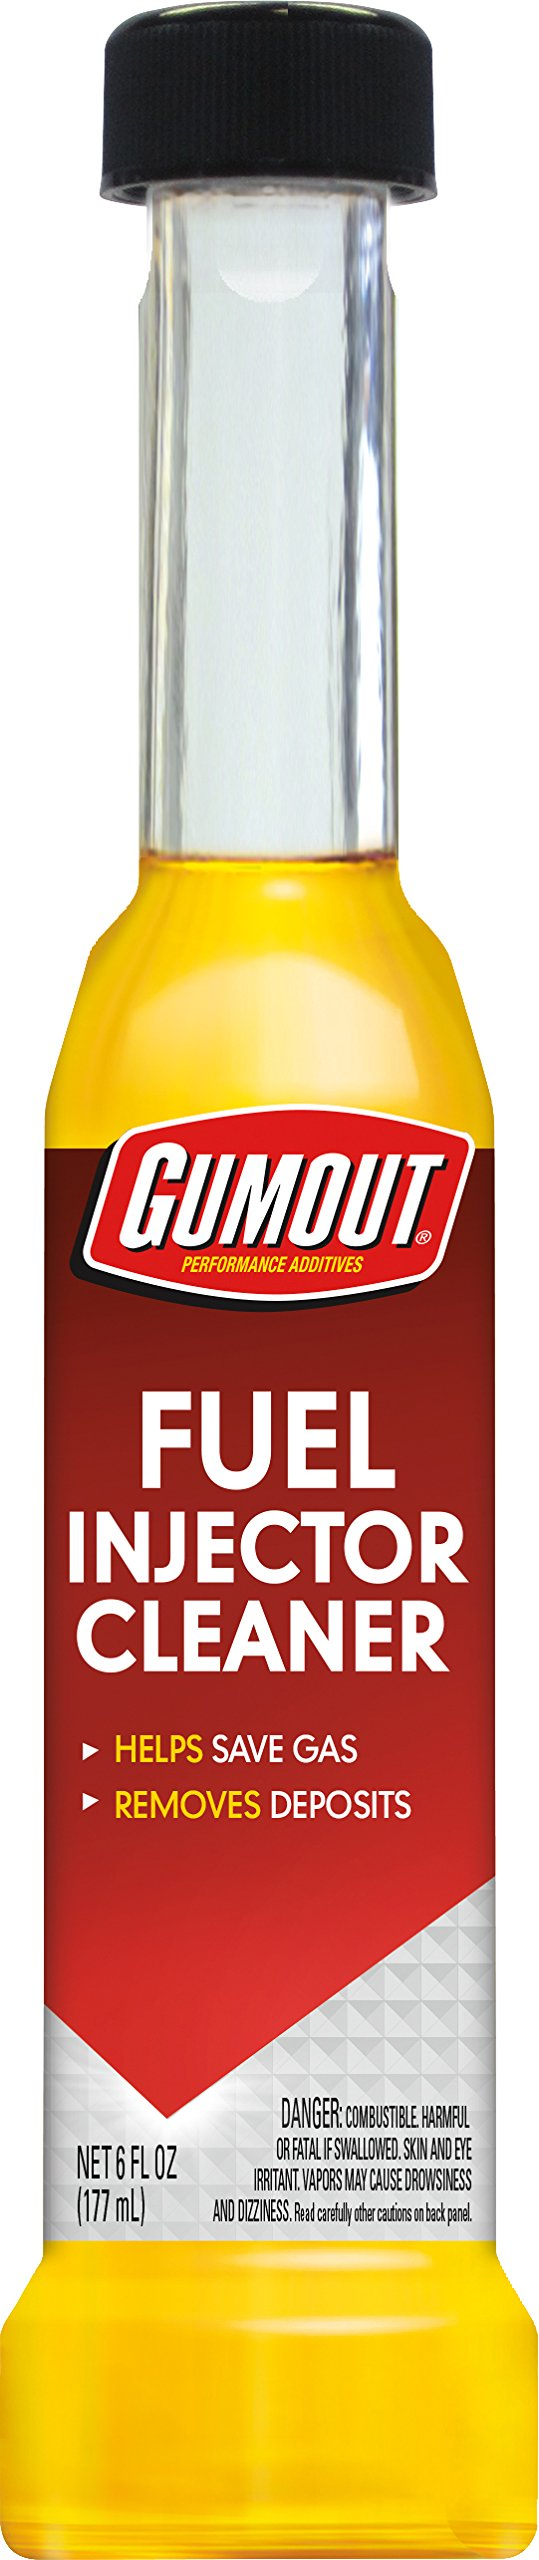 Gumout 800001371 Fuel Injector Cleaner (177 ml) product image